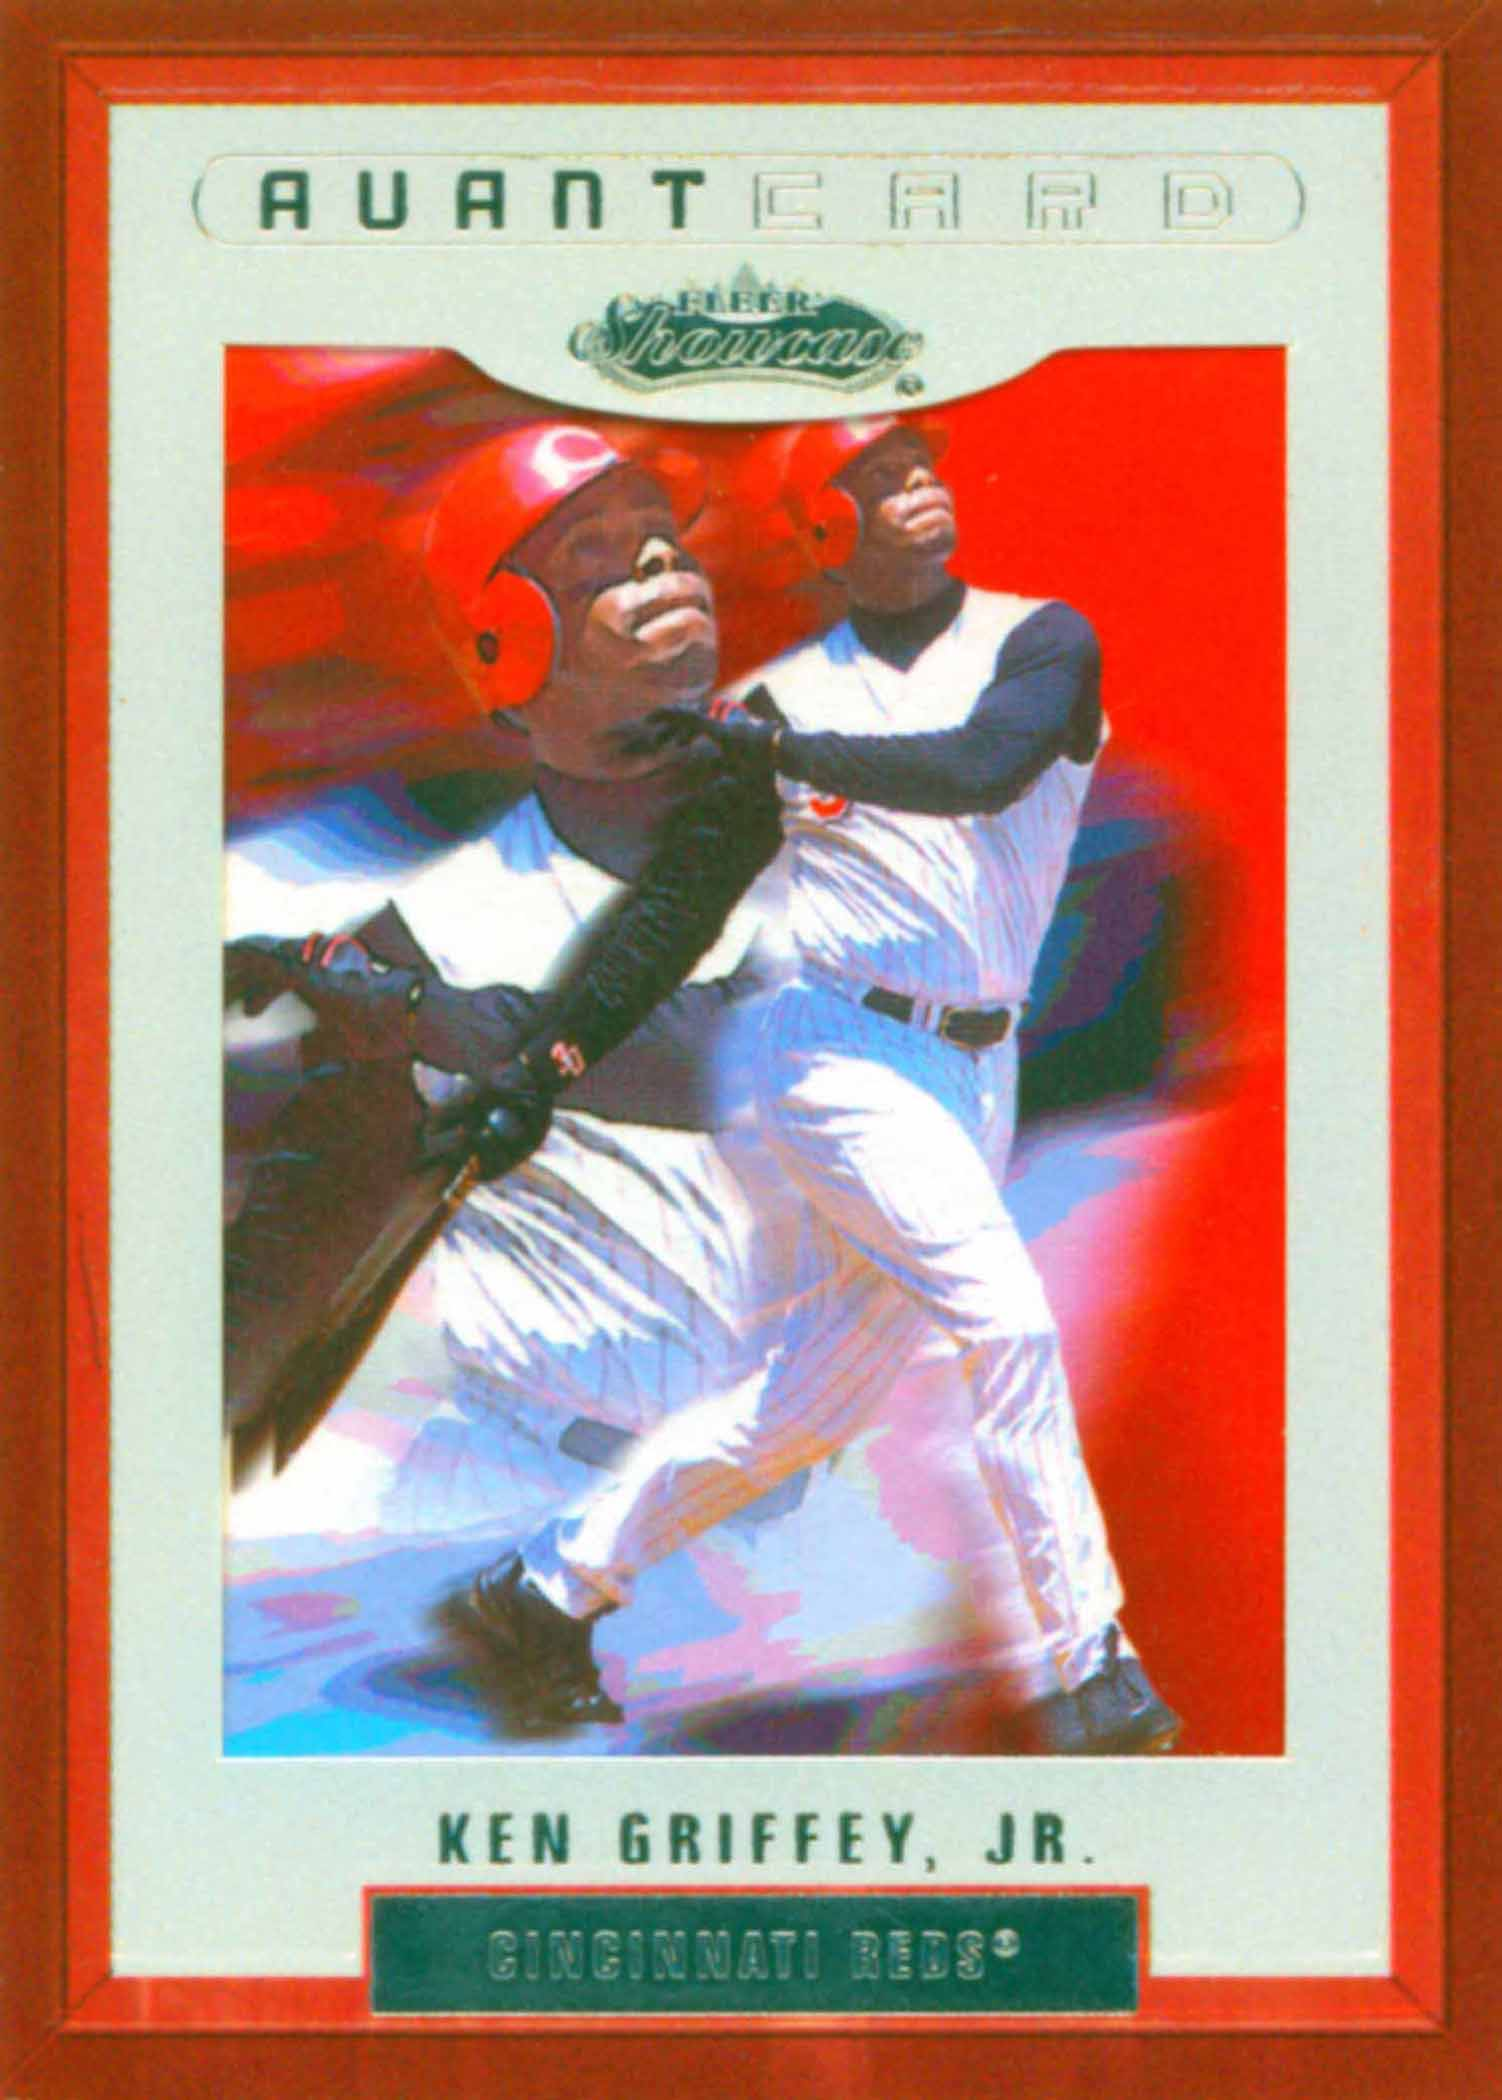 2002 Fleer Showcase AvantCard